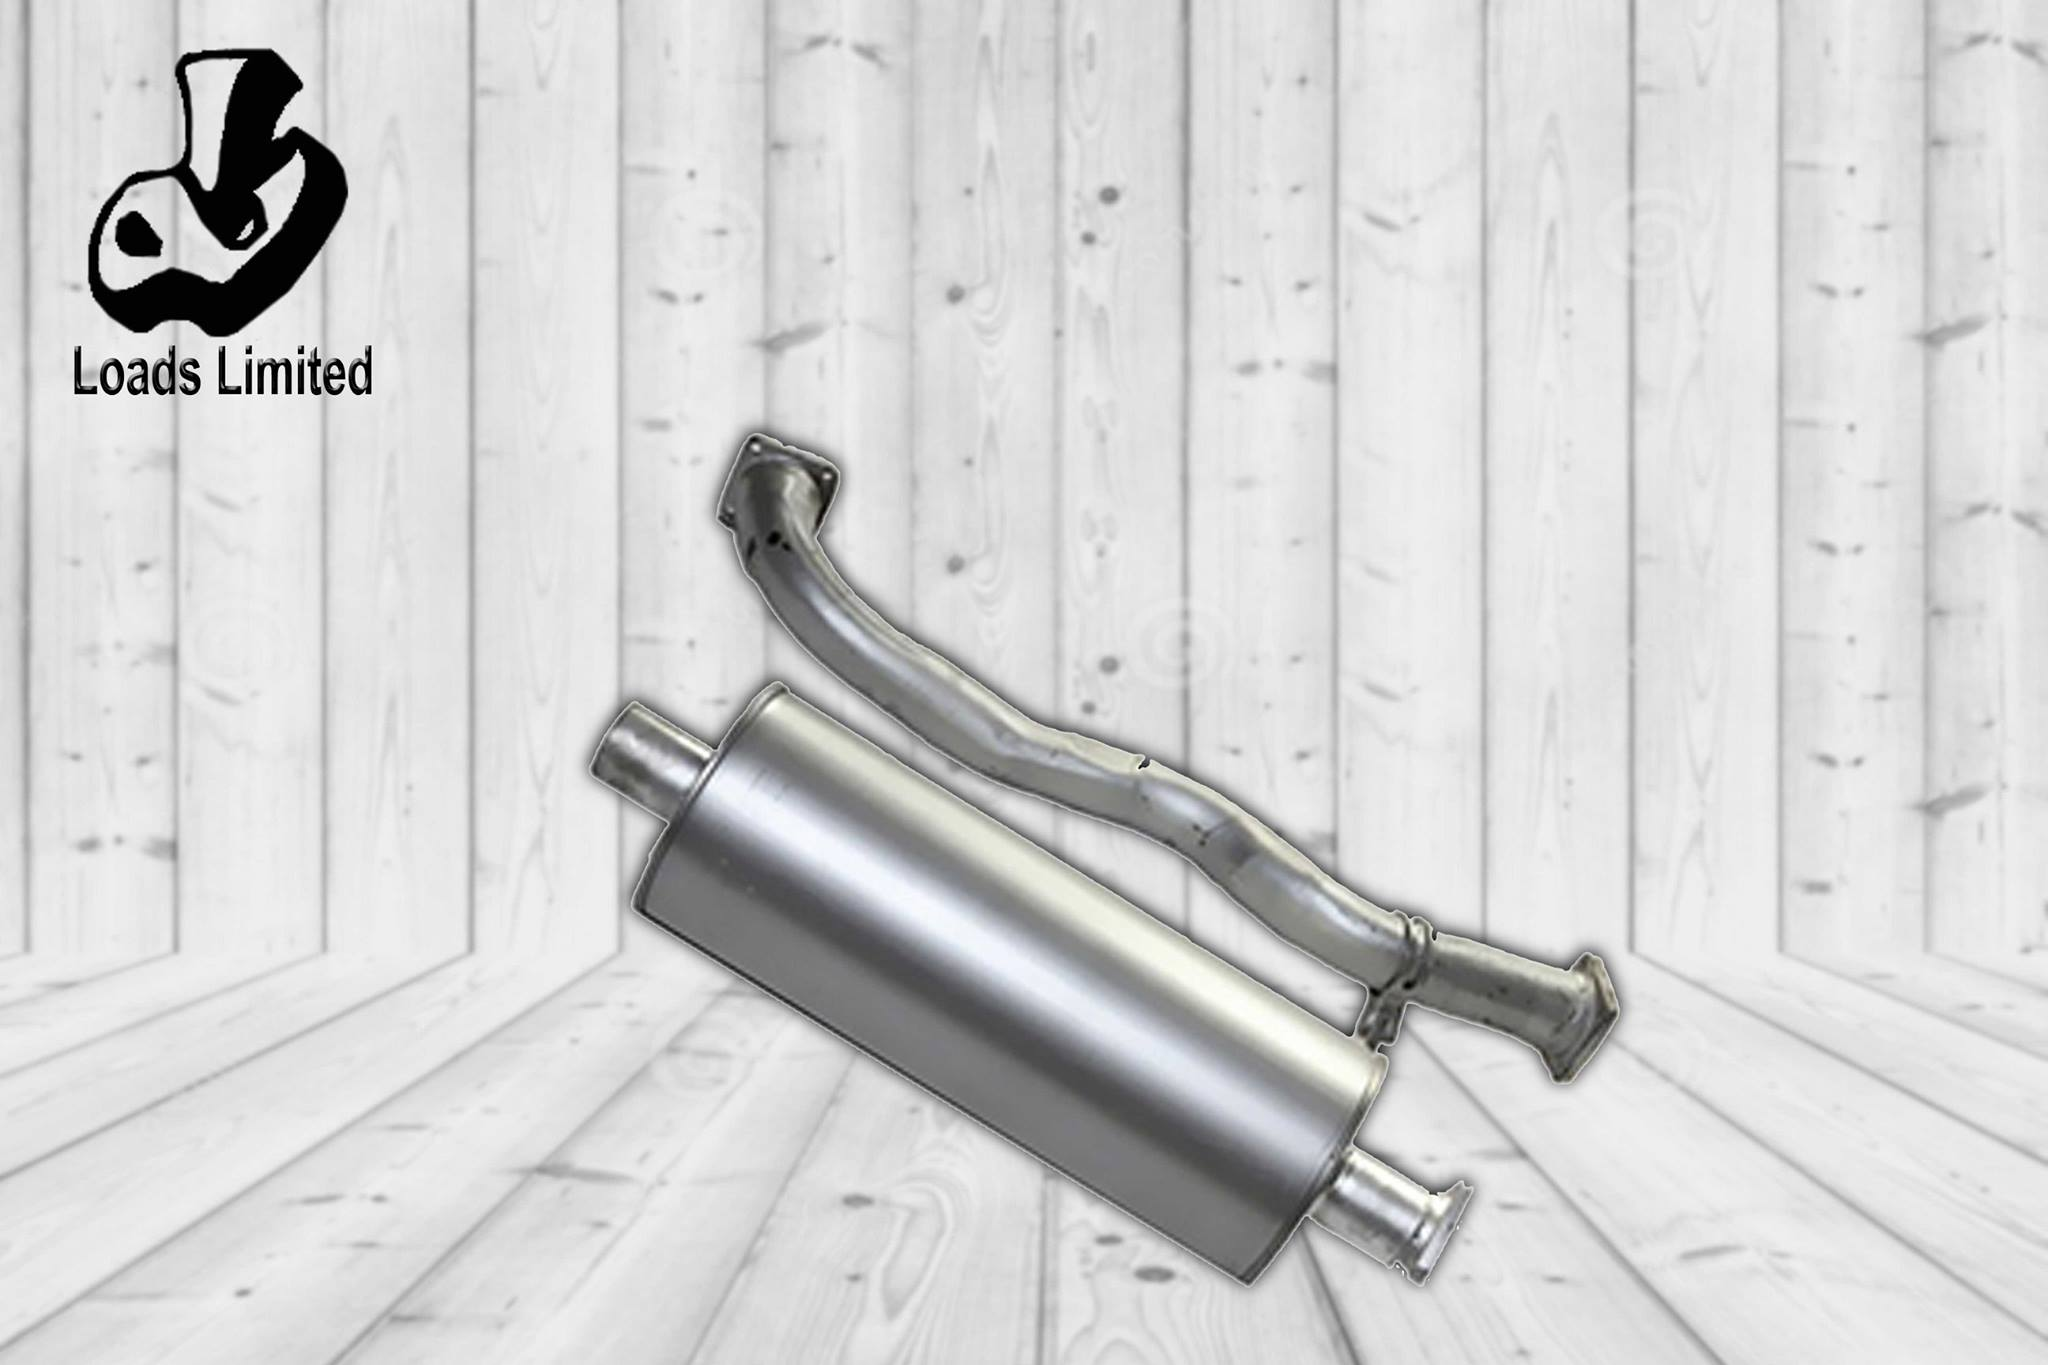 MUFFLER SUB ASSEMBLY/ PIPE ASSEMBLY EXHAUST